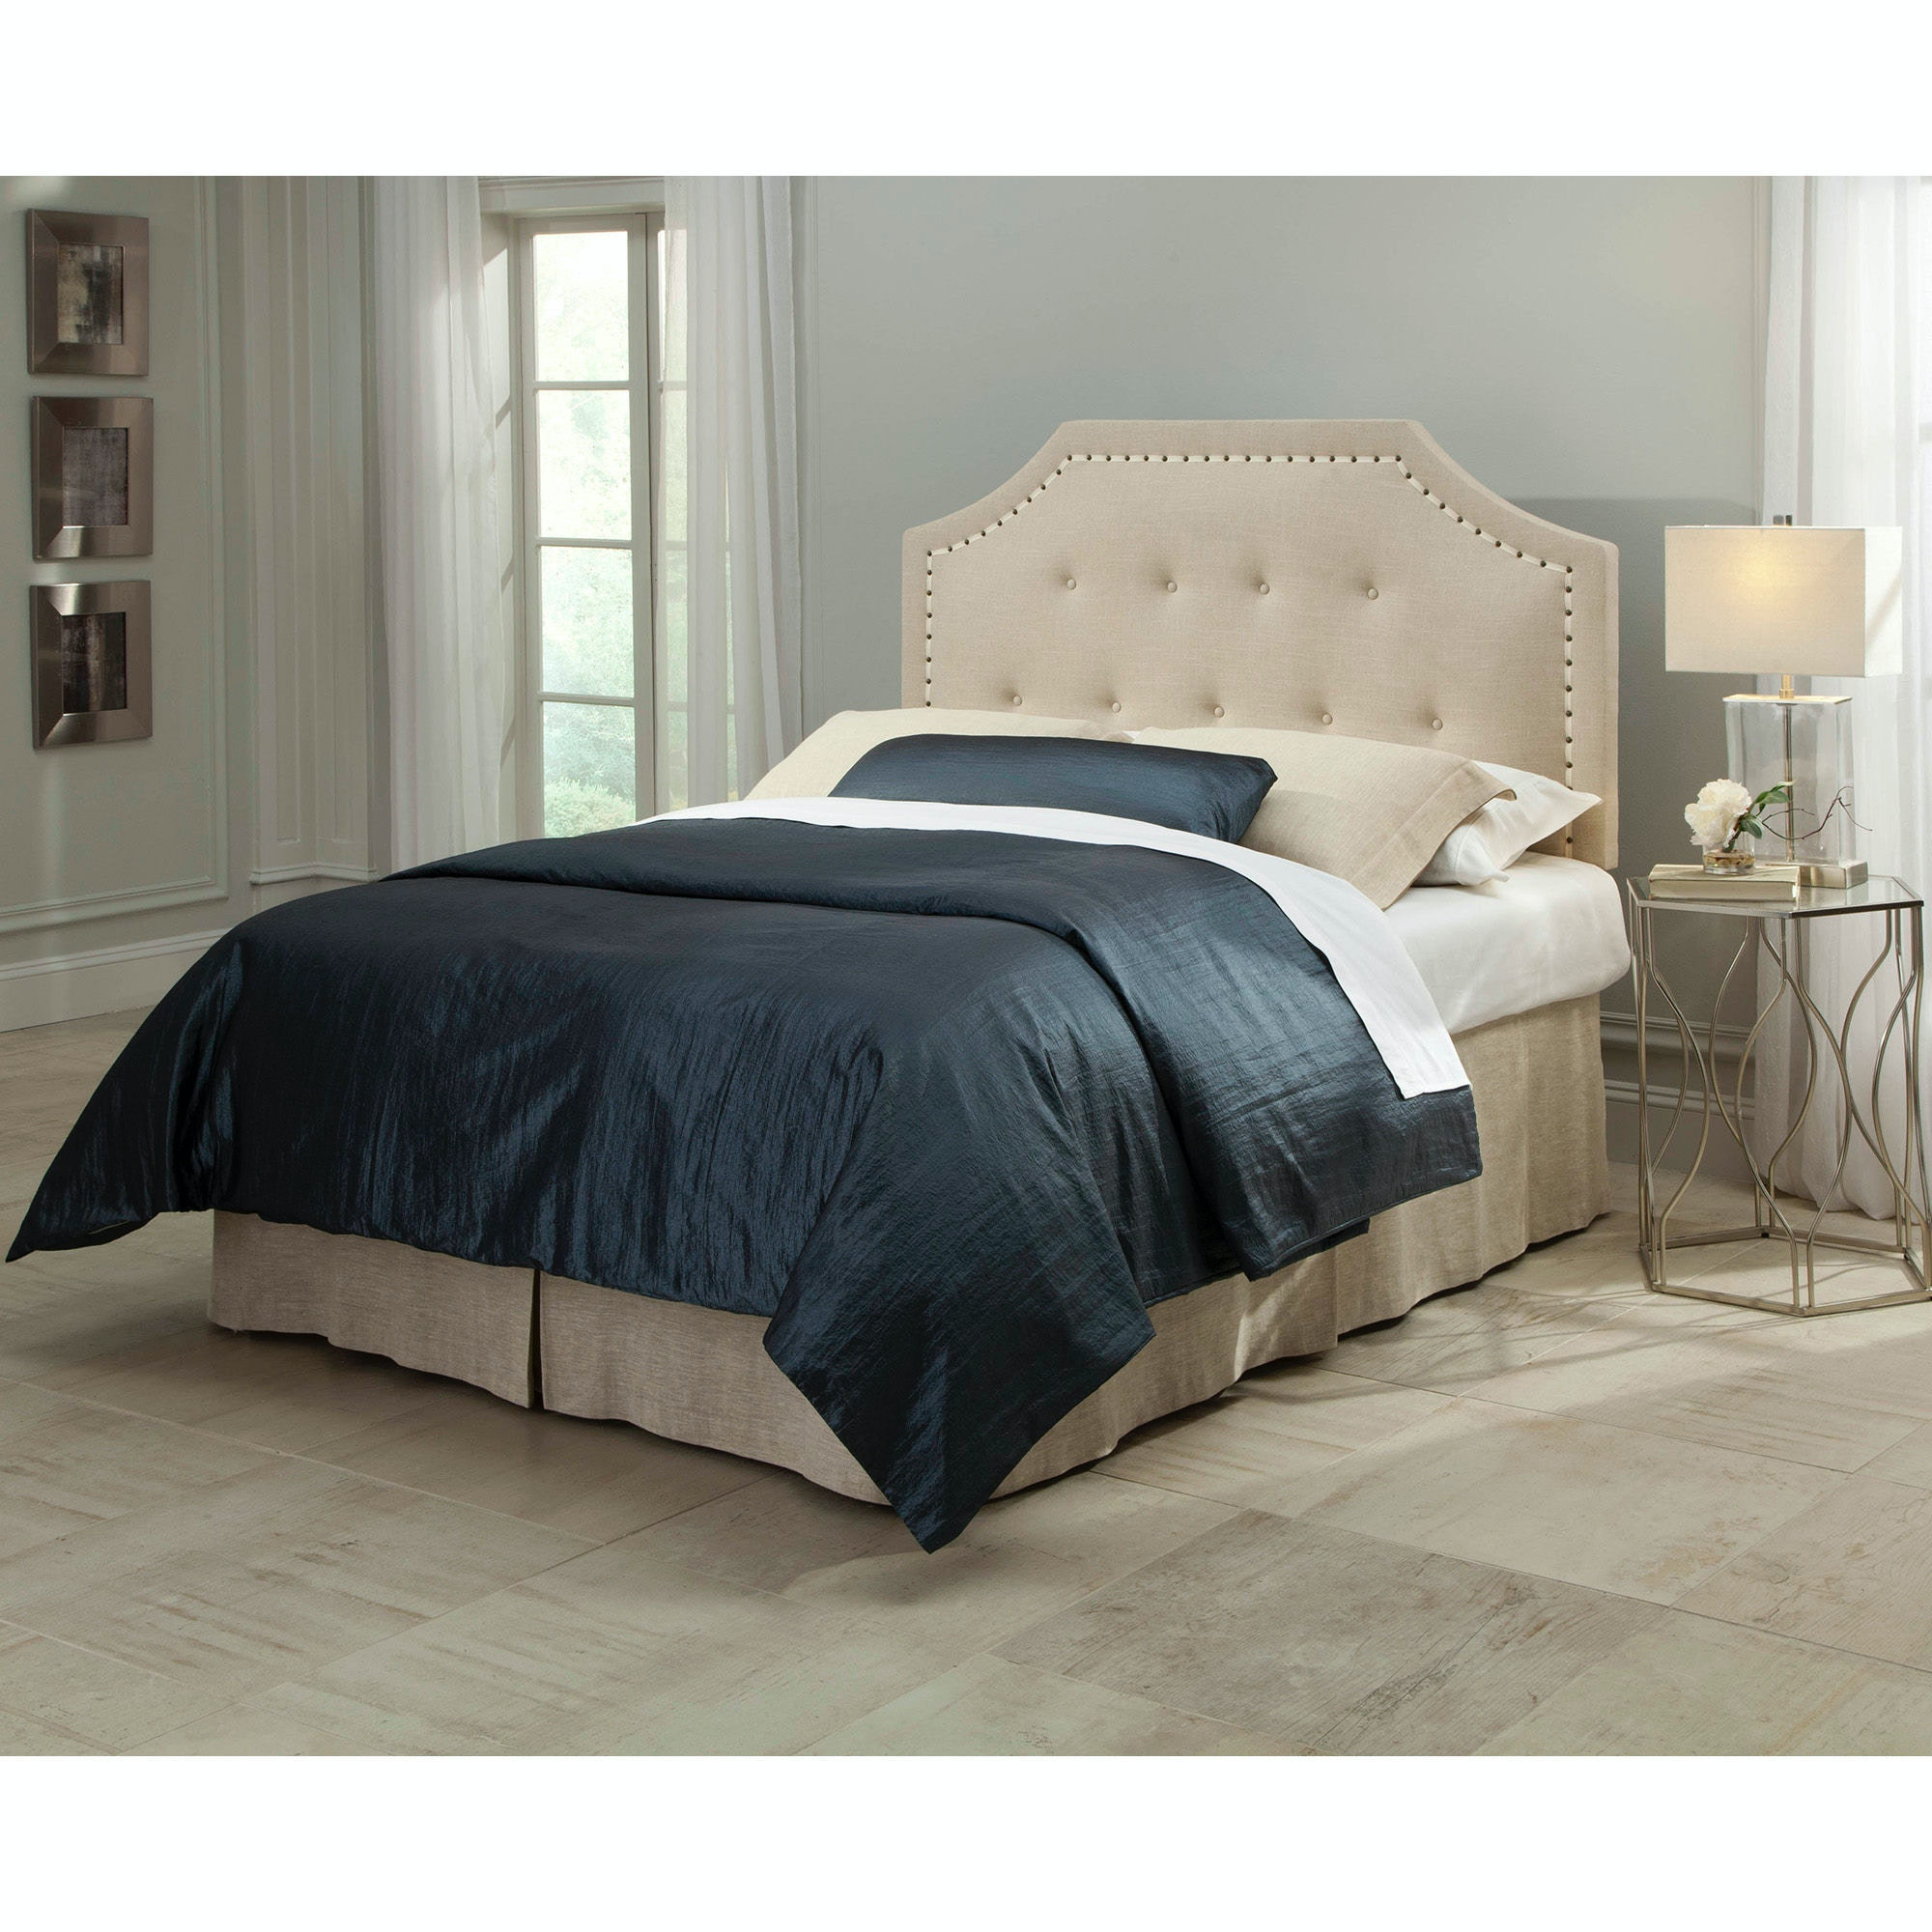 ... Fashion Bed Group Avignon Upholstered Adjustable Headboard With Button  Tufting And Contrast Tape Nail Head Trim